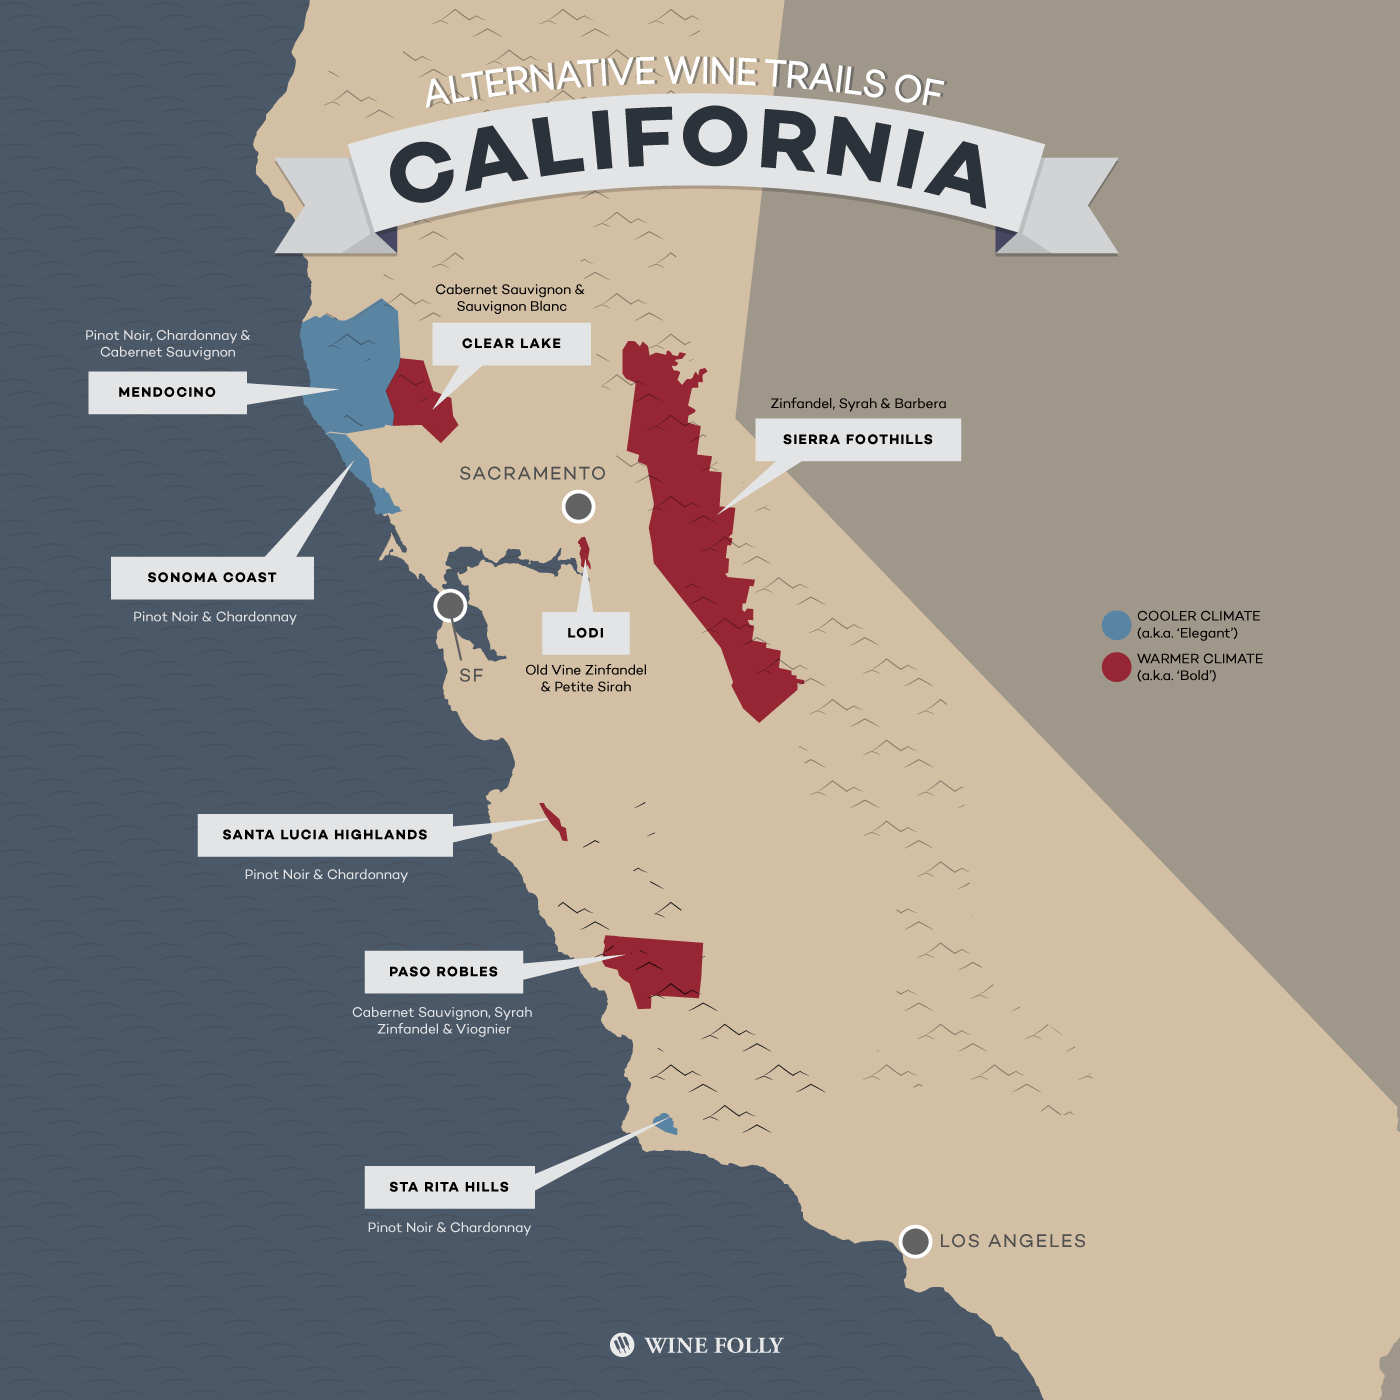 alternative-wine-trails-of-california-maps